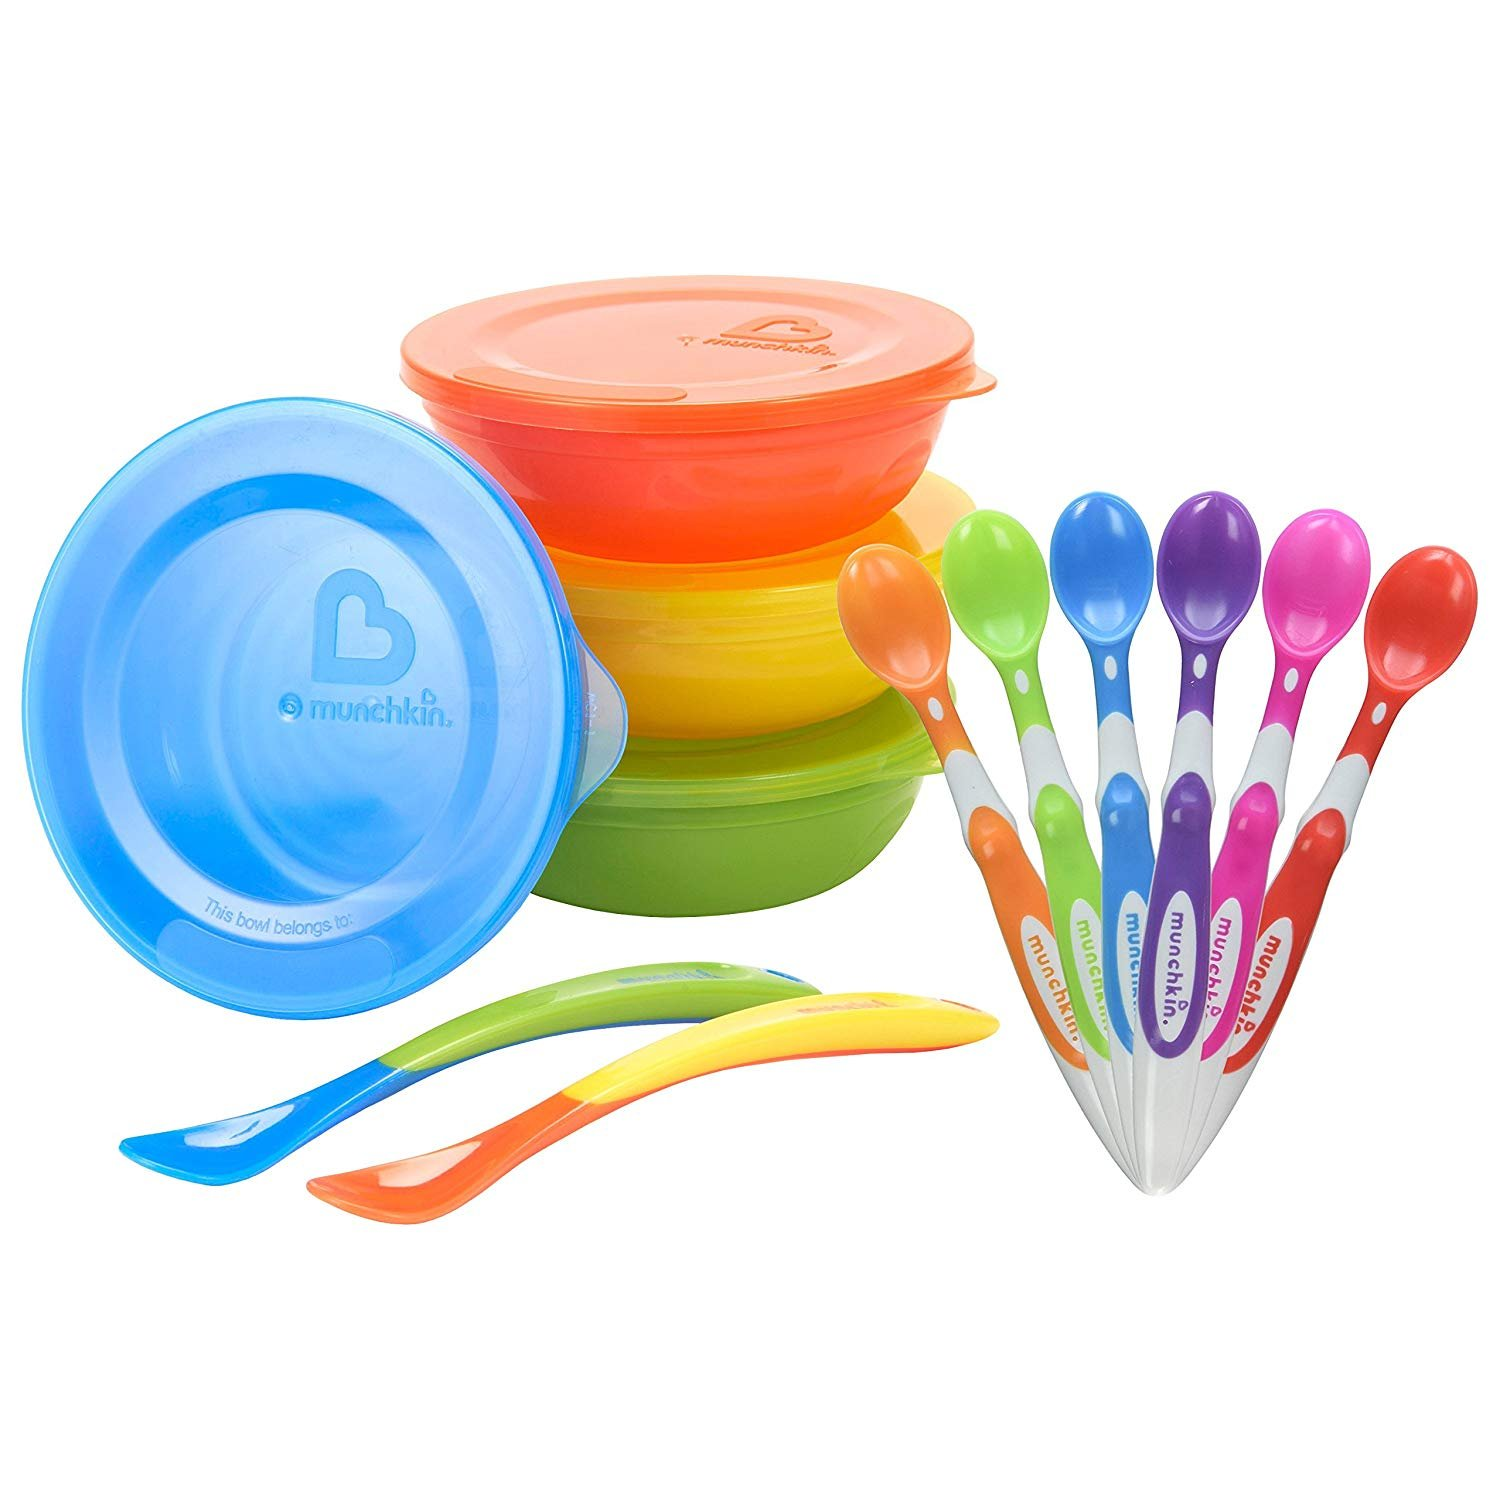 Munchkin 6-Pack Soft Tip Infant Spoons with Love A Bowls